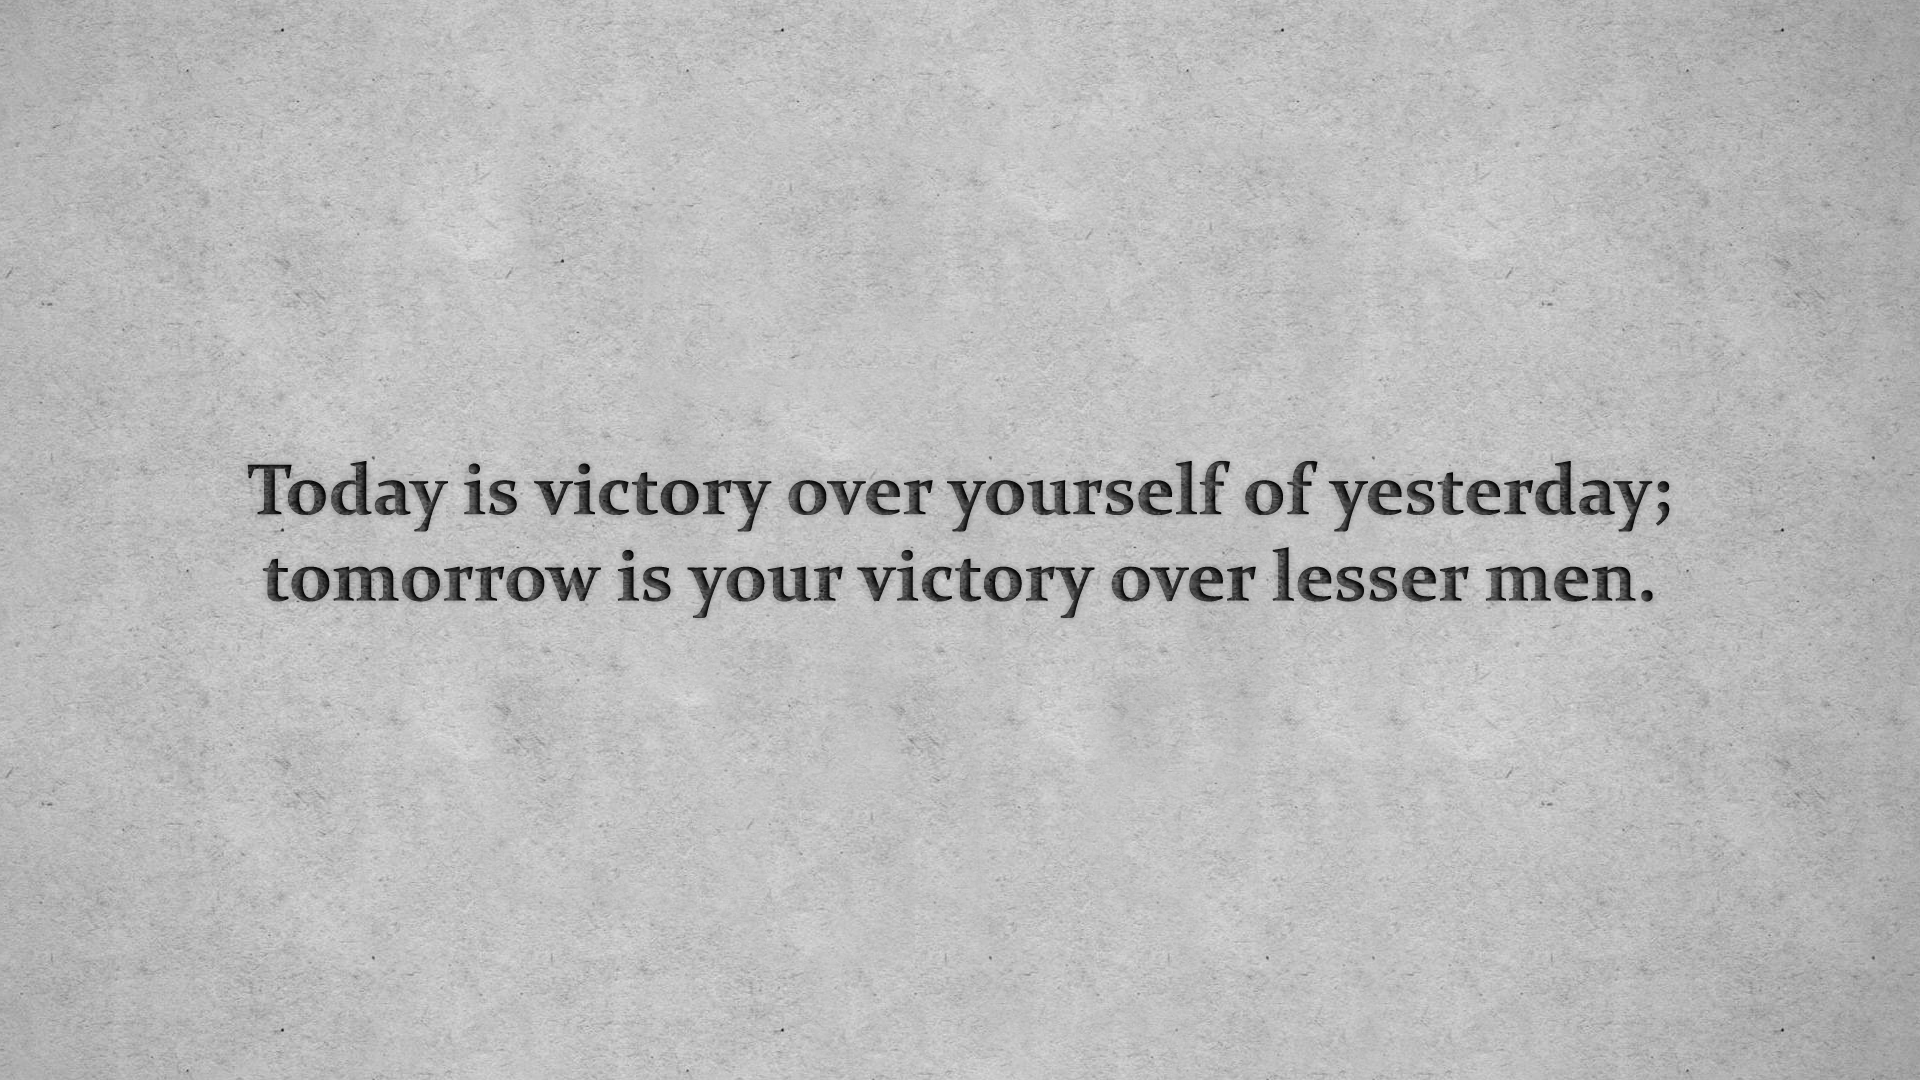 misc motivational wallpaper 1920x1080 - photo #22